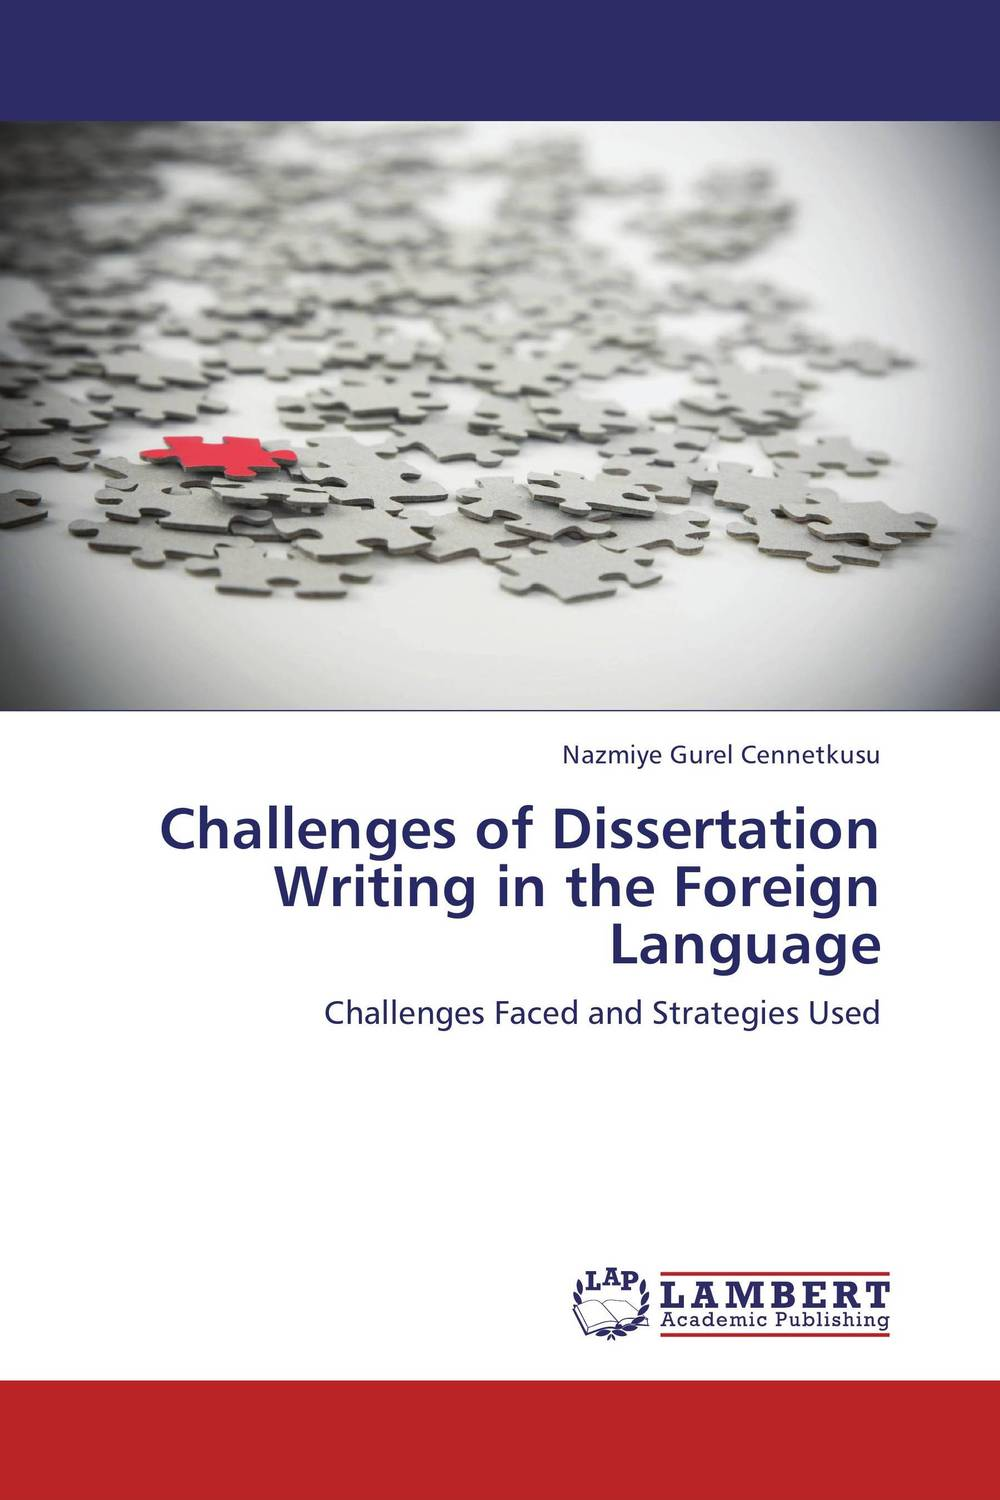 Challenges of Dissertation Writing in the Foreign Language